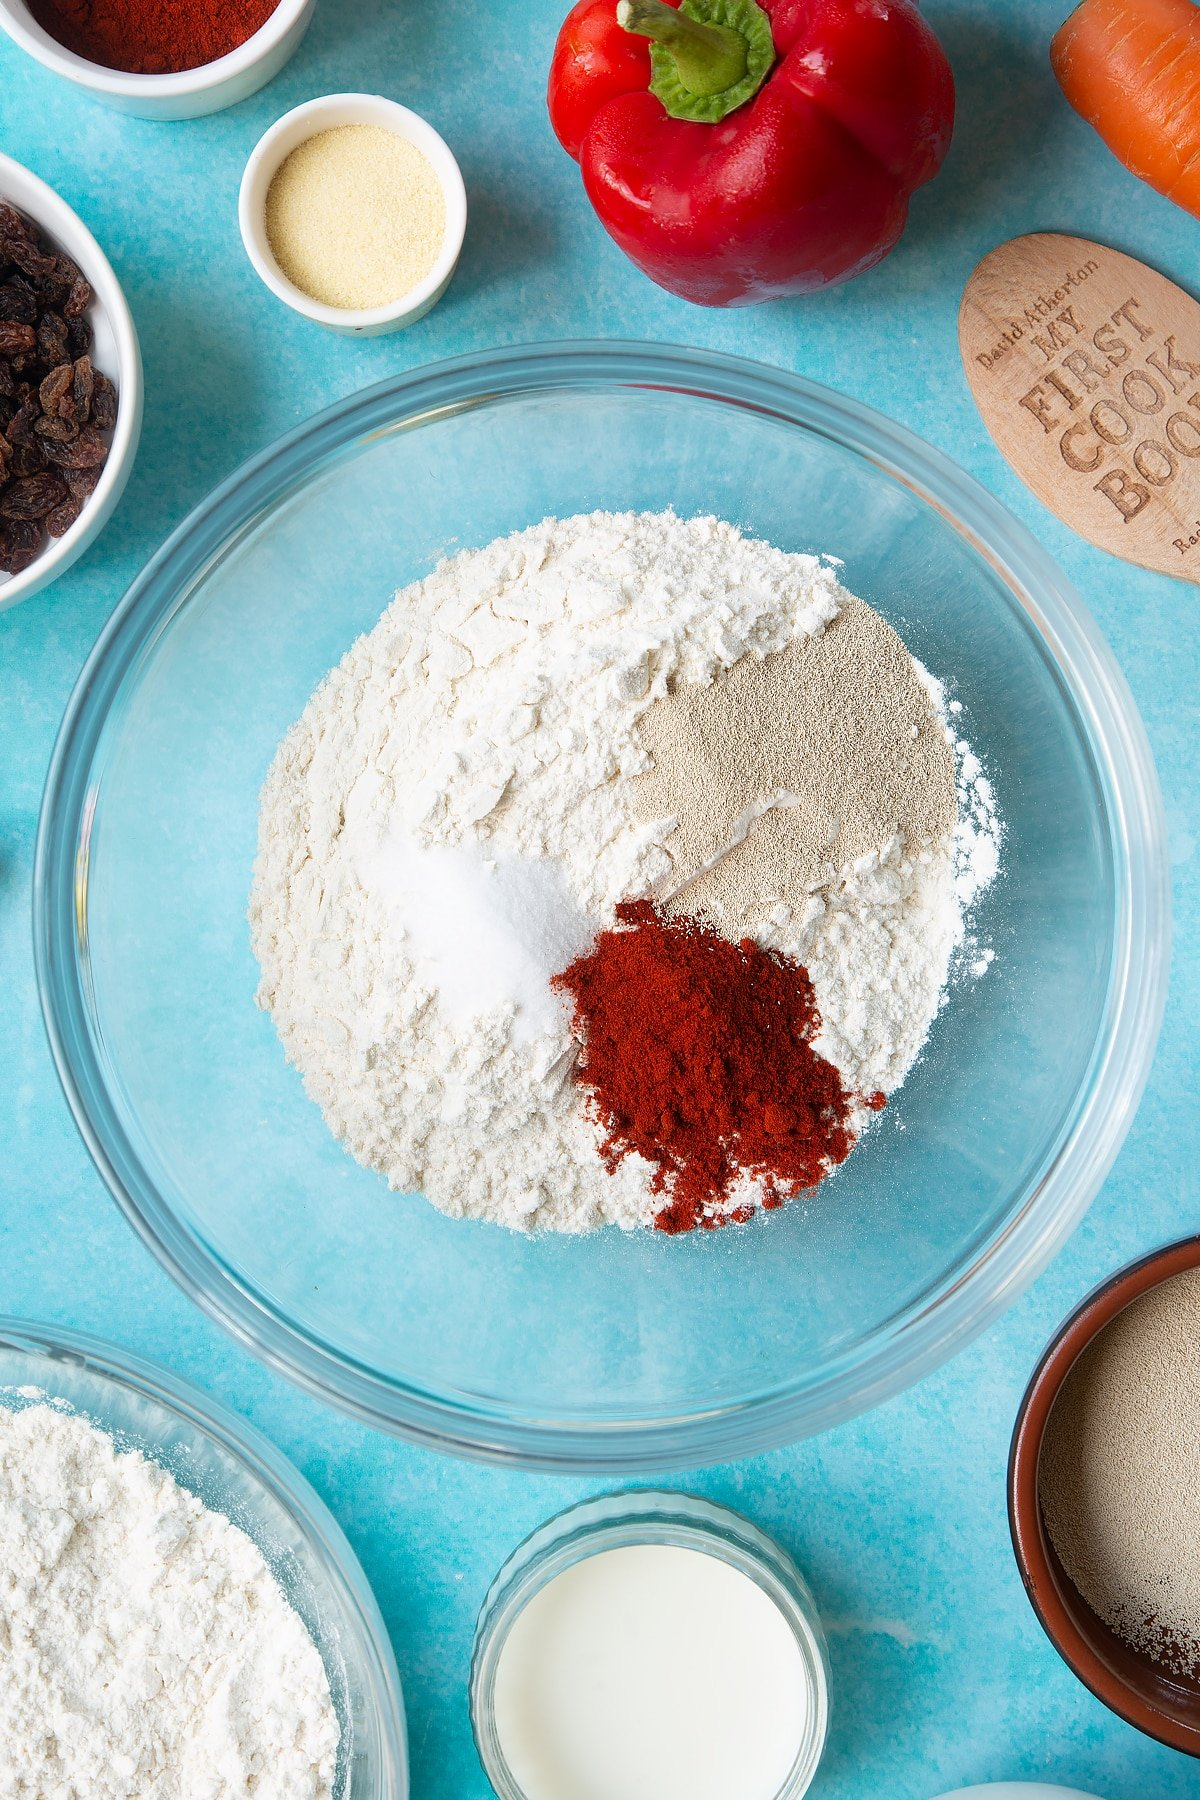 Flour, salt, paprika and yeast in a mixing bowl. Ingredients to make bread snakes surround the bowl.